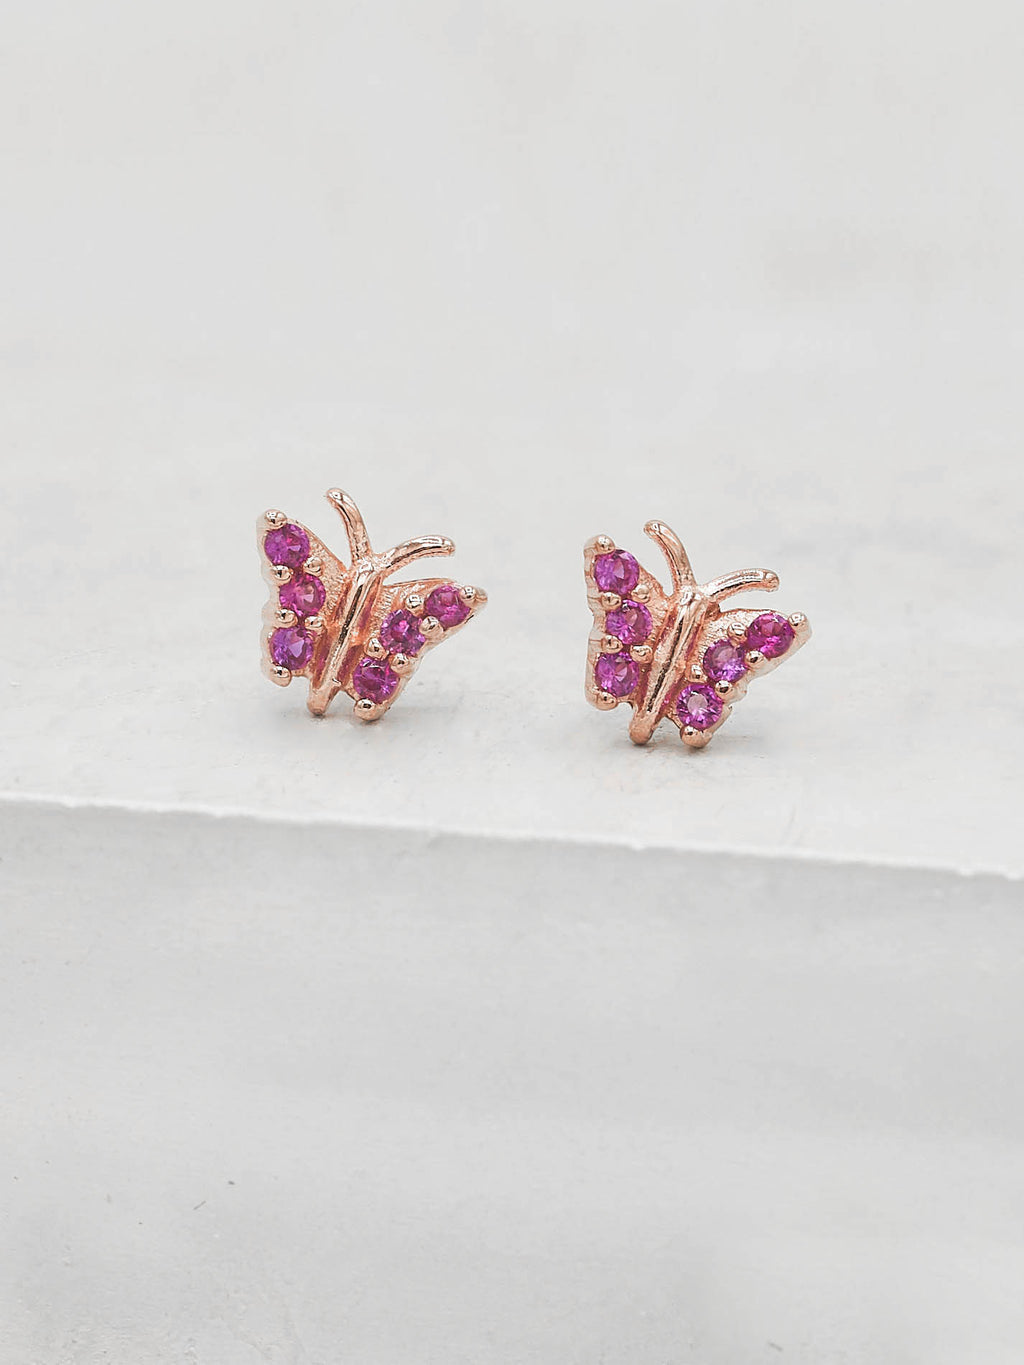 Rose Gold Plated Tiny butterfly with Pink CZ cubic Zirconia Dainty Stud Earrings by The Faint Hearted jewelry